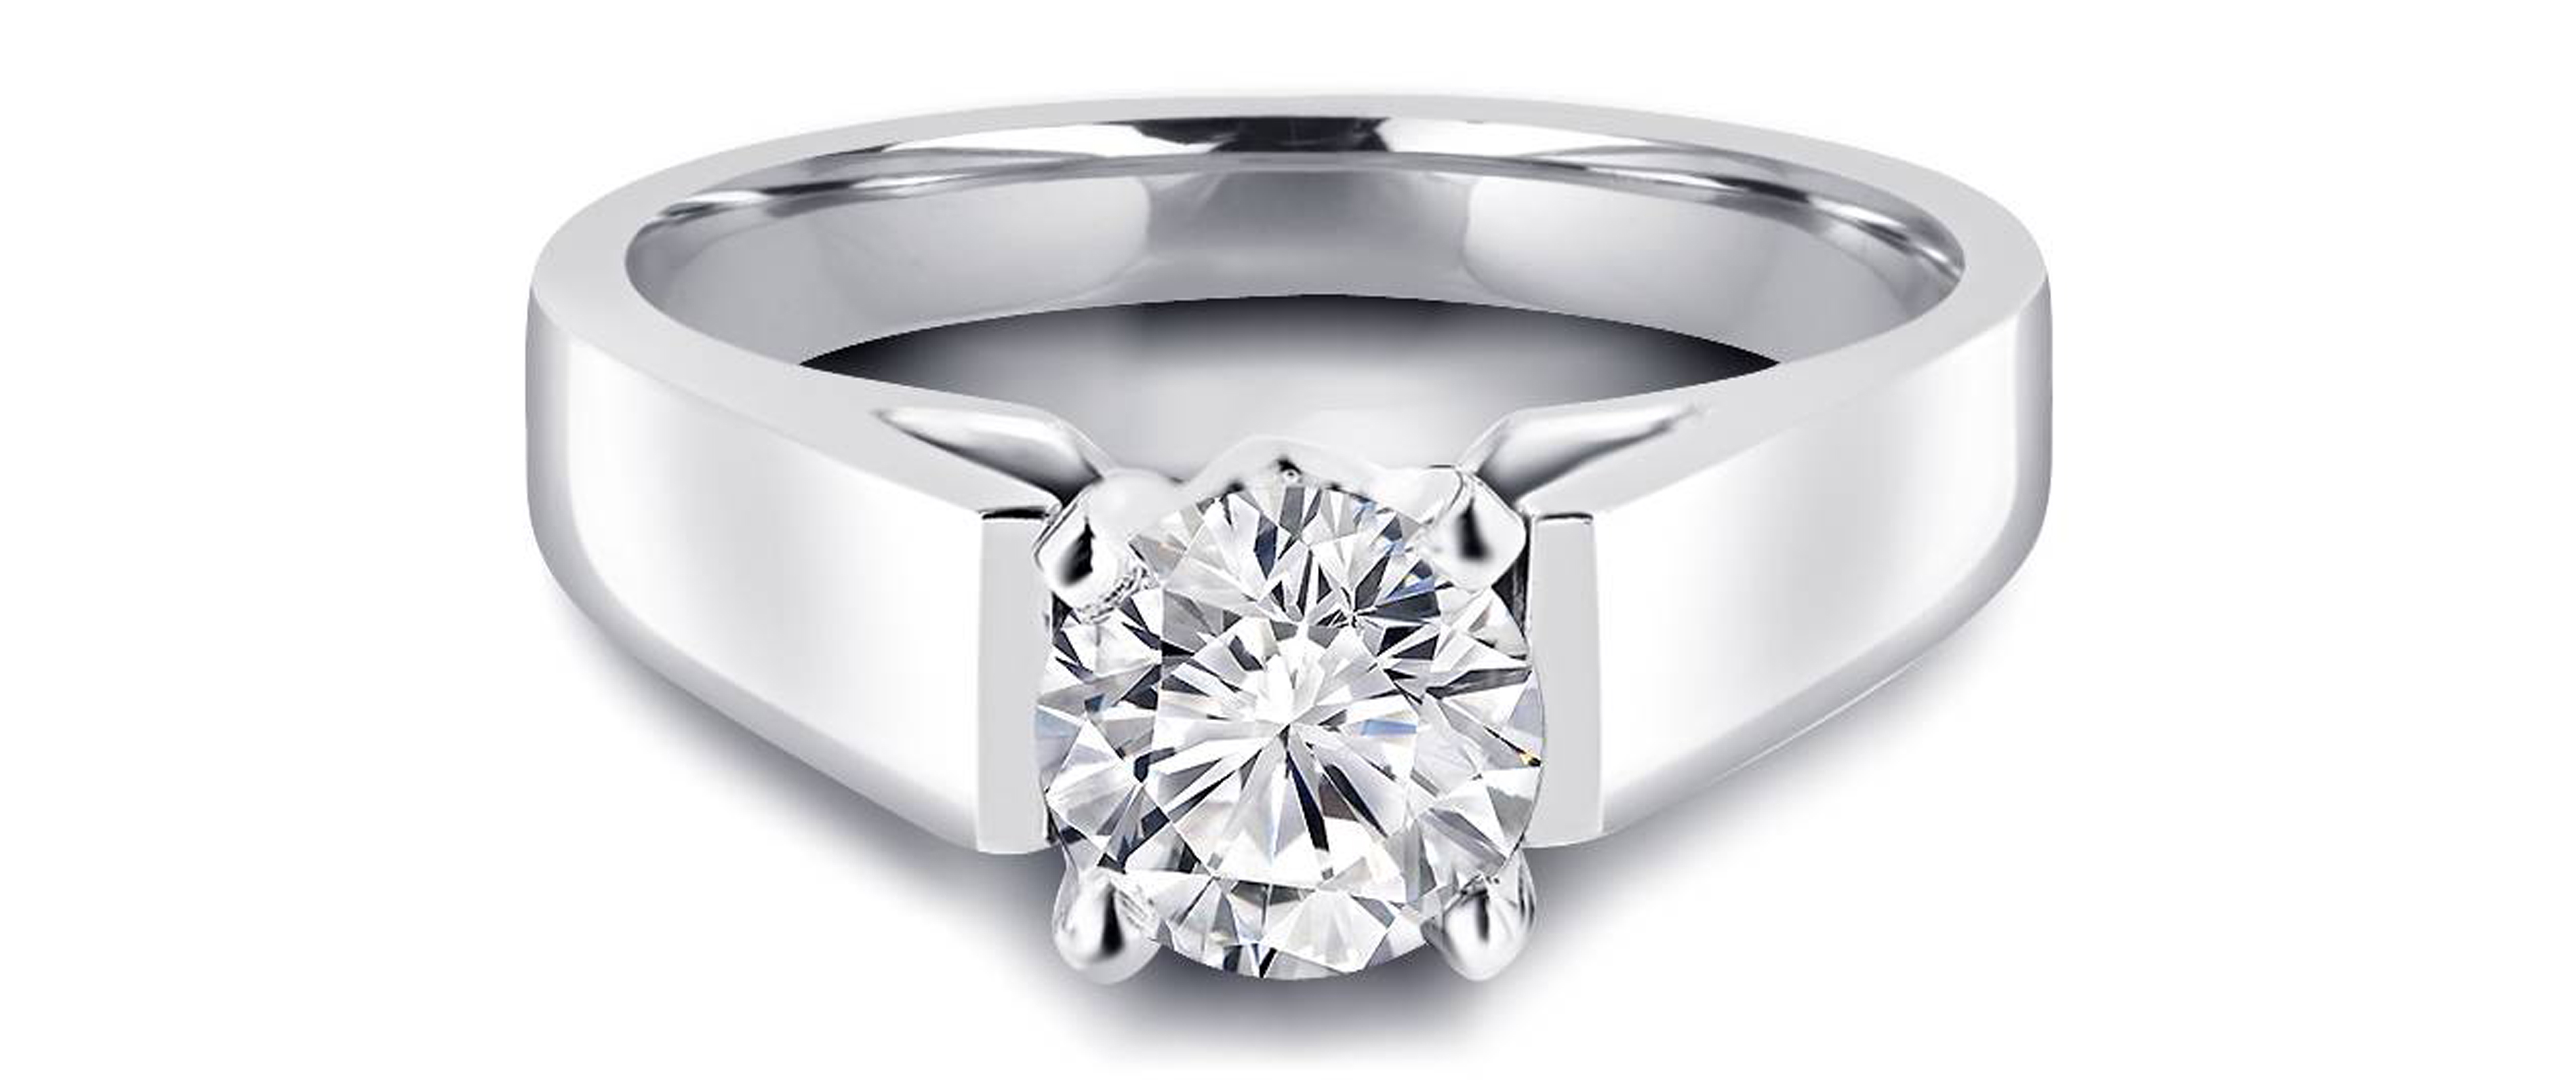 brilliant diamond cut loni ring you for brisbane solitaire rings square di customised intl diamonds sky engagement